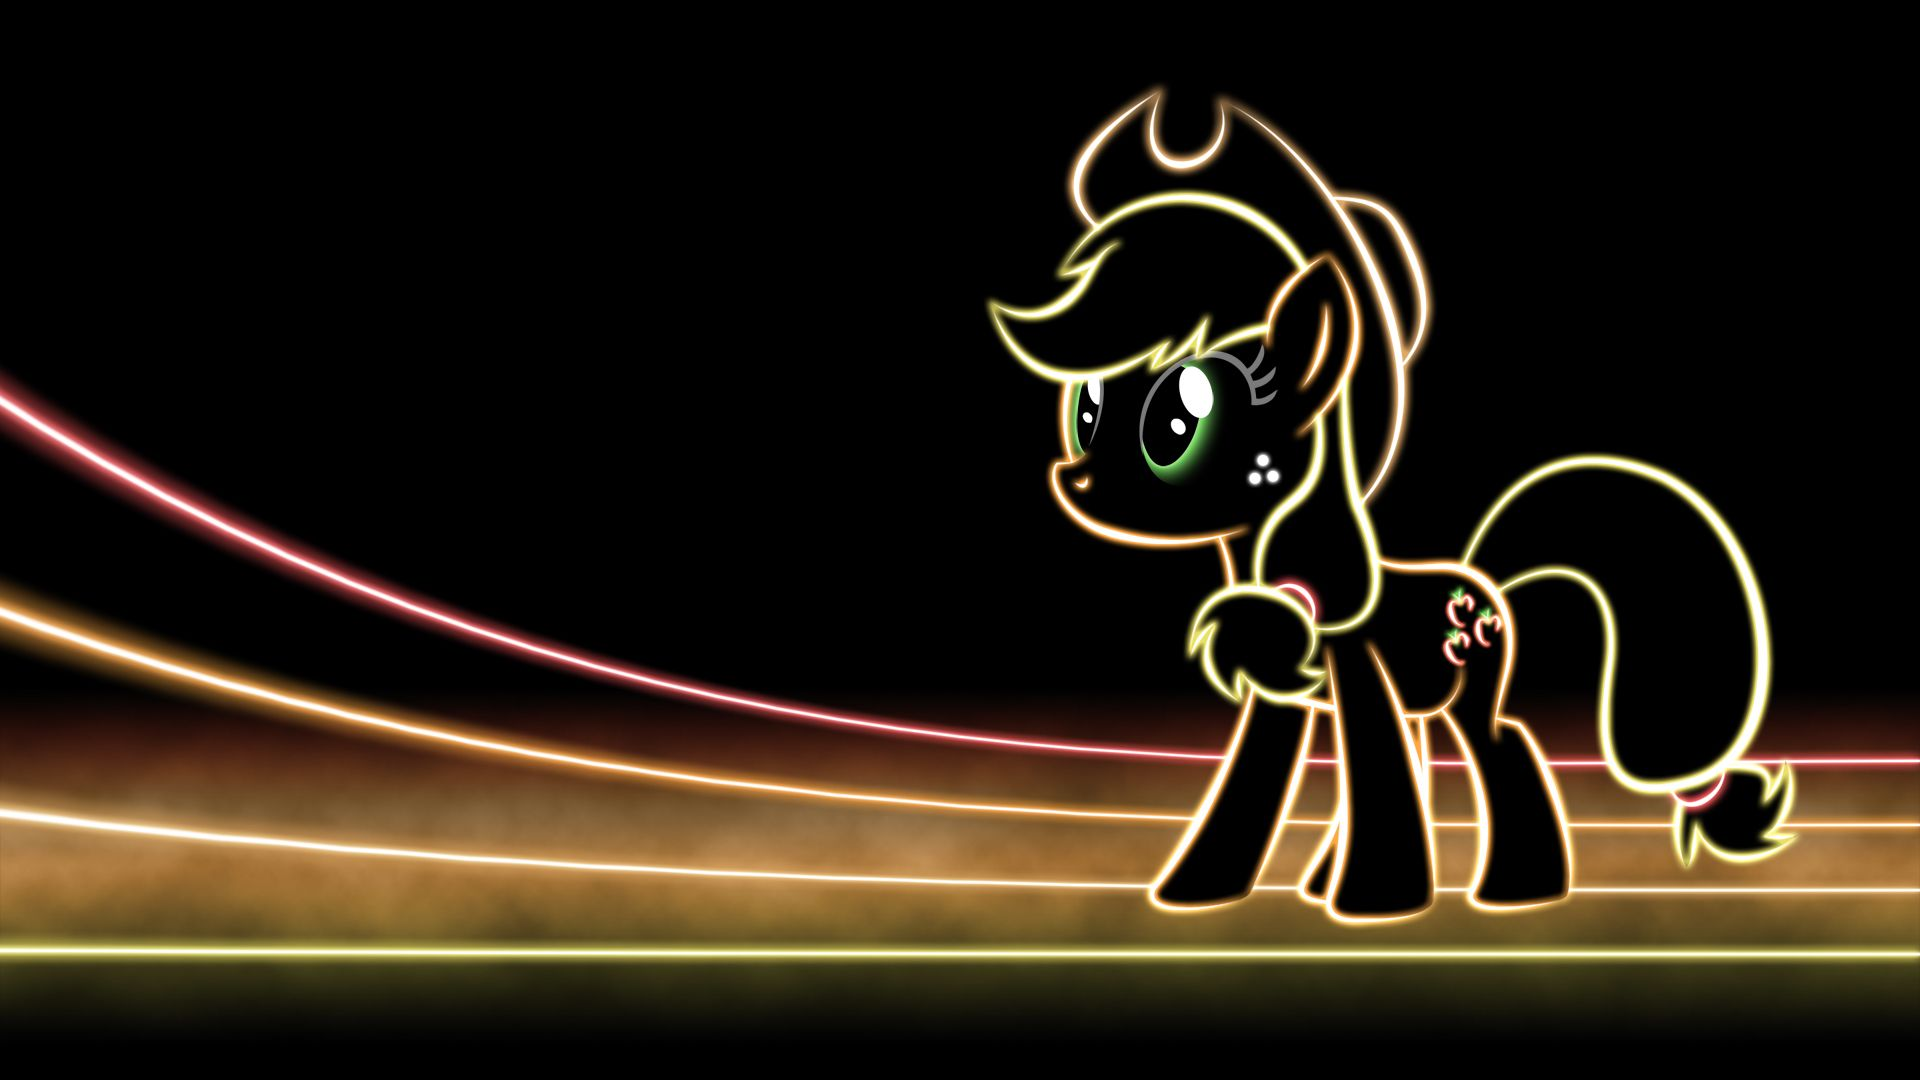 mlp-glow-wallpapers-my-little-pony-friendship-is-magic-24559344-1920